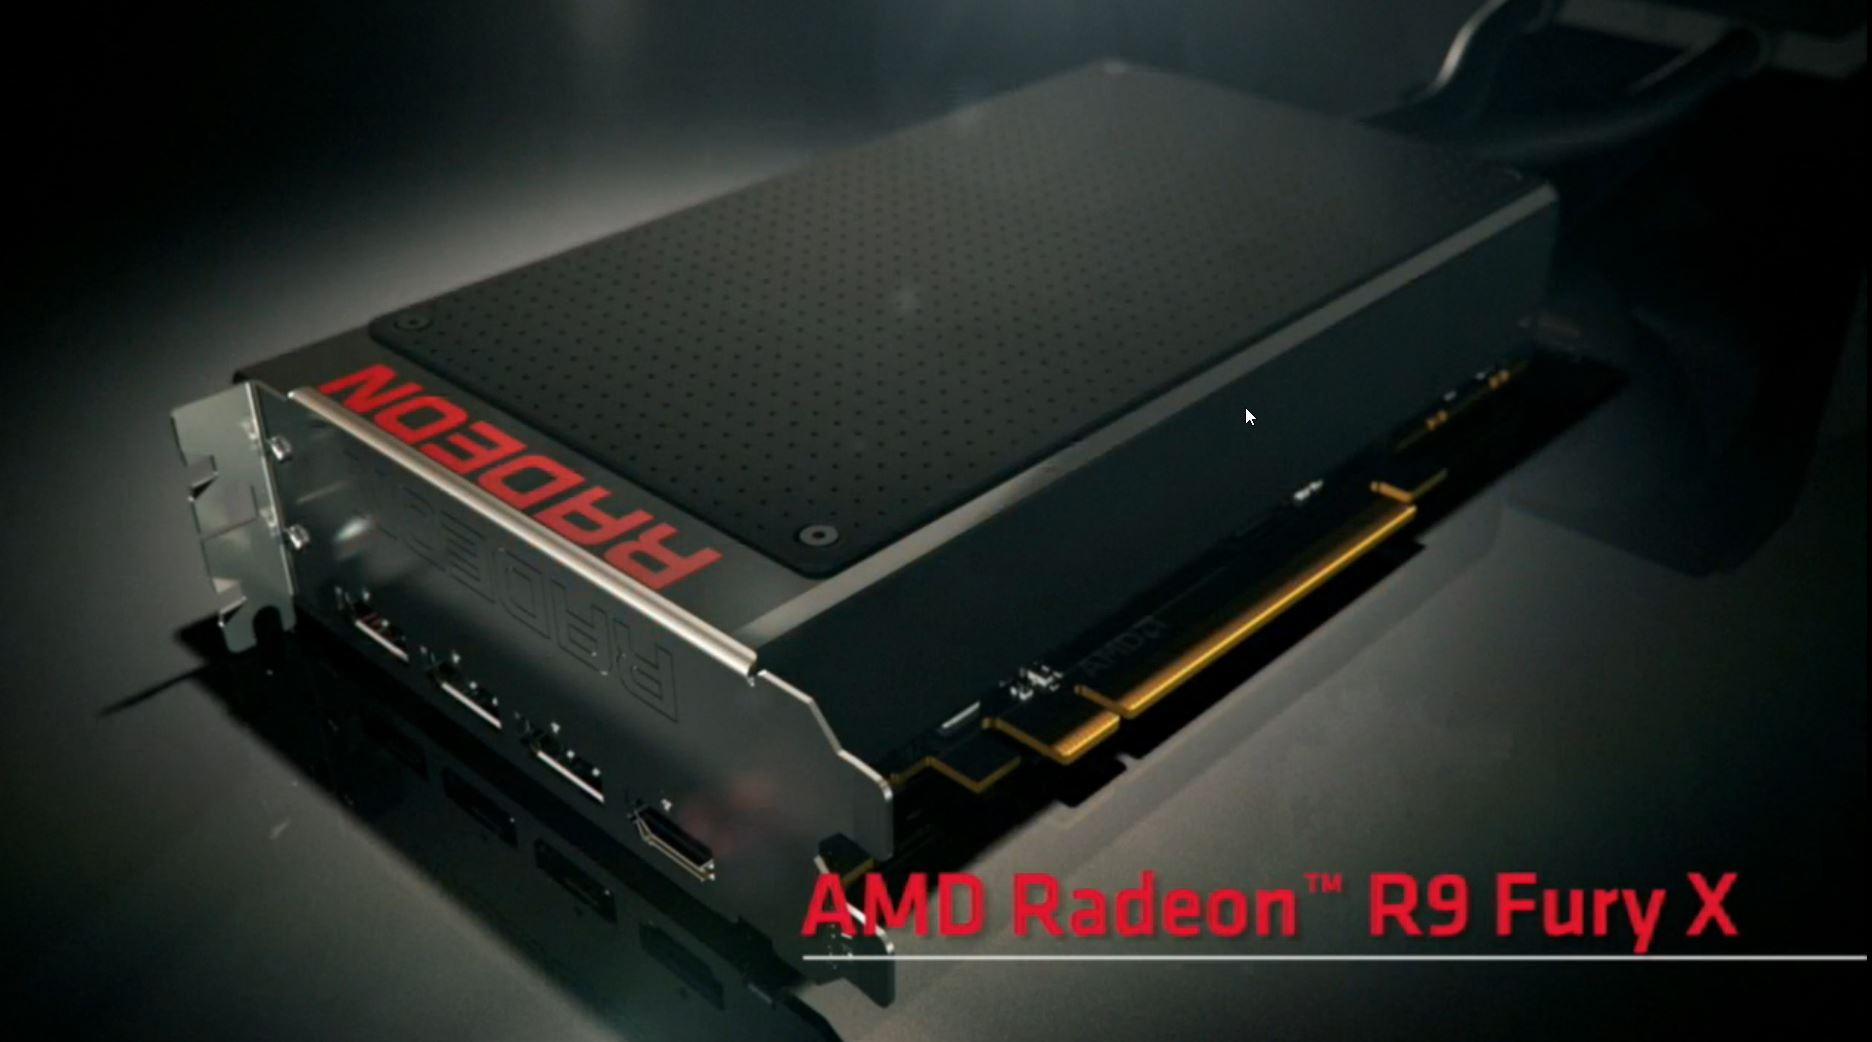 AMD-Radeon-R9-Fury-X-Graphics-Card